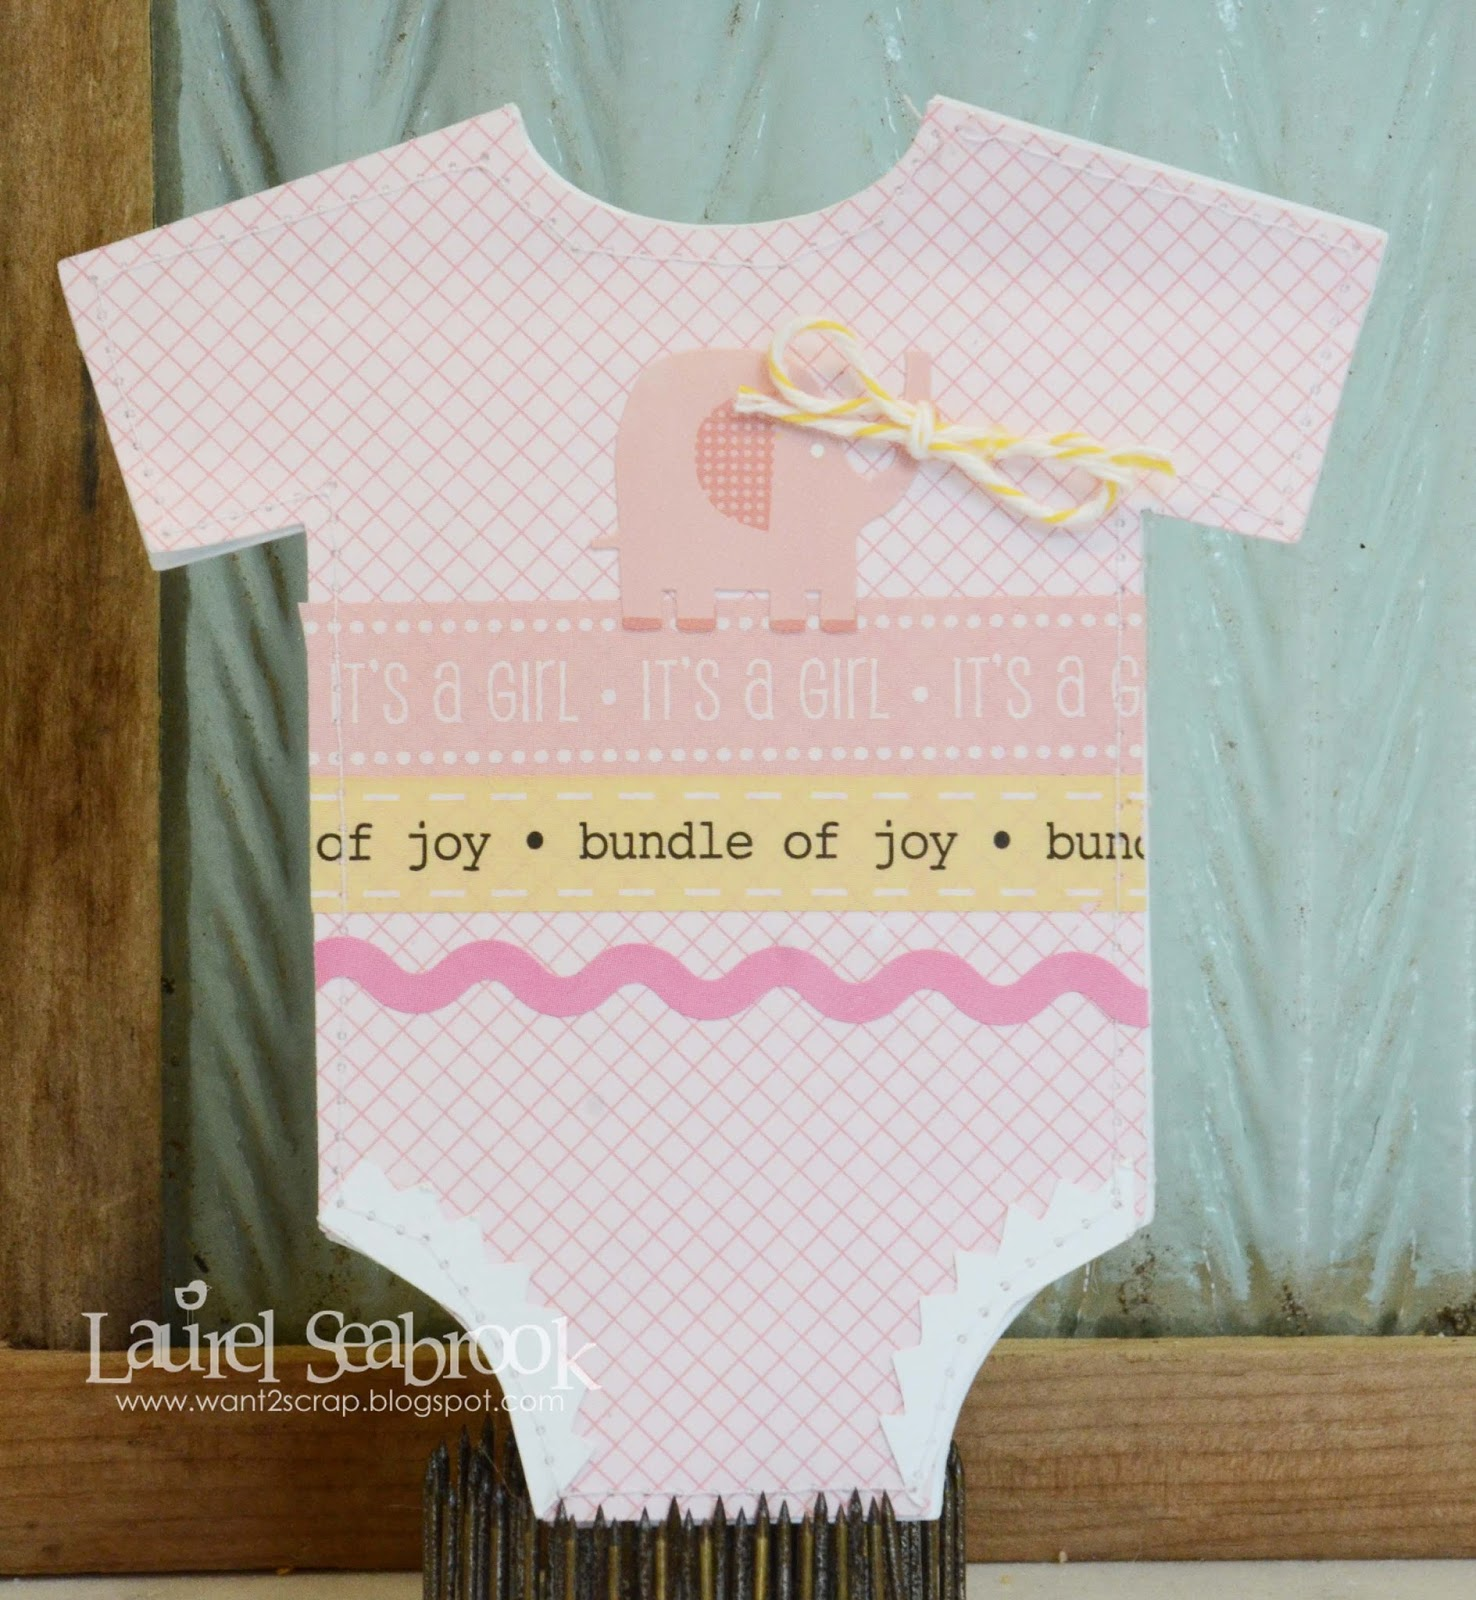 SRM Stickers Blog - Bundle of Joy Card by Laurel -#card #diecut #borders #stickers